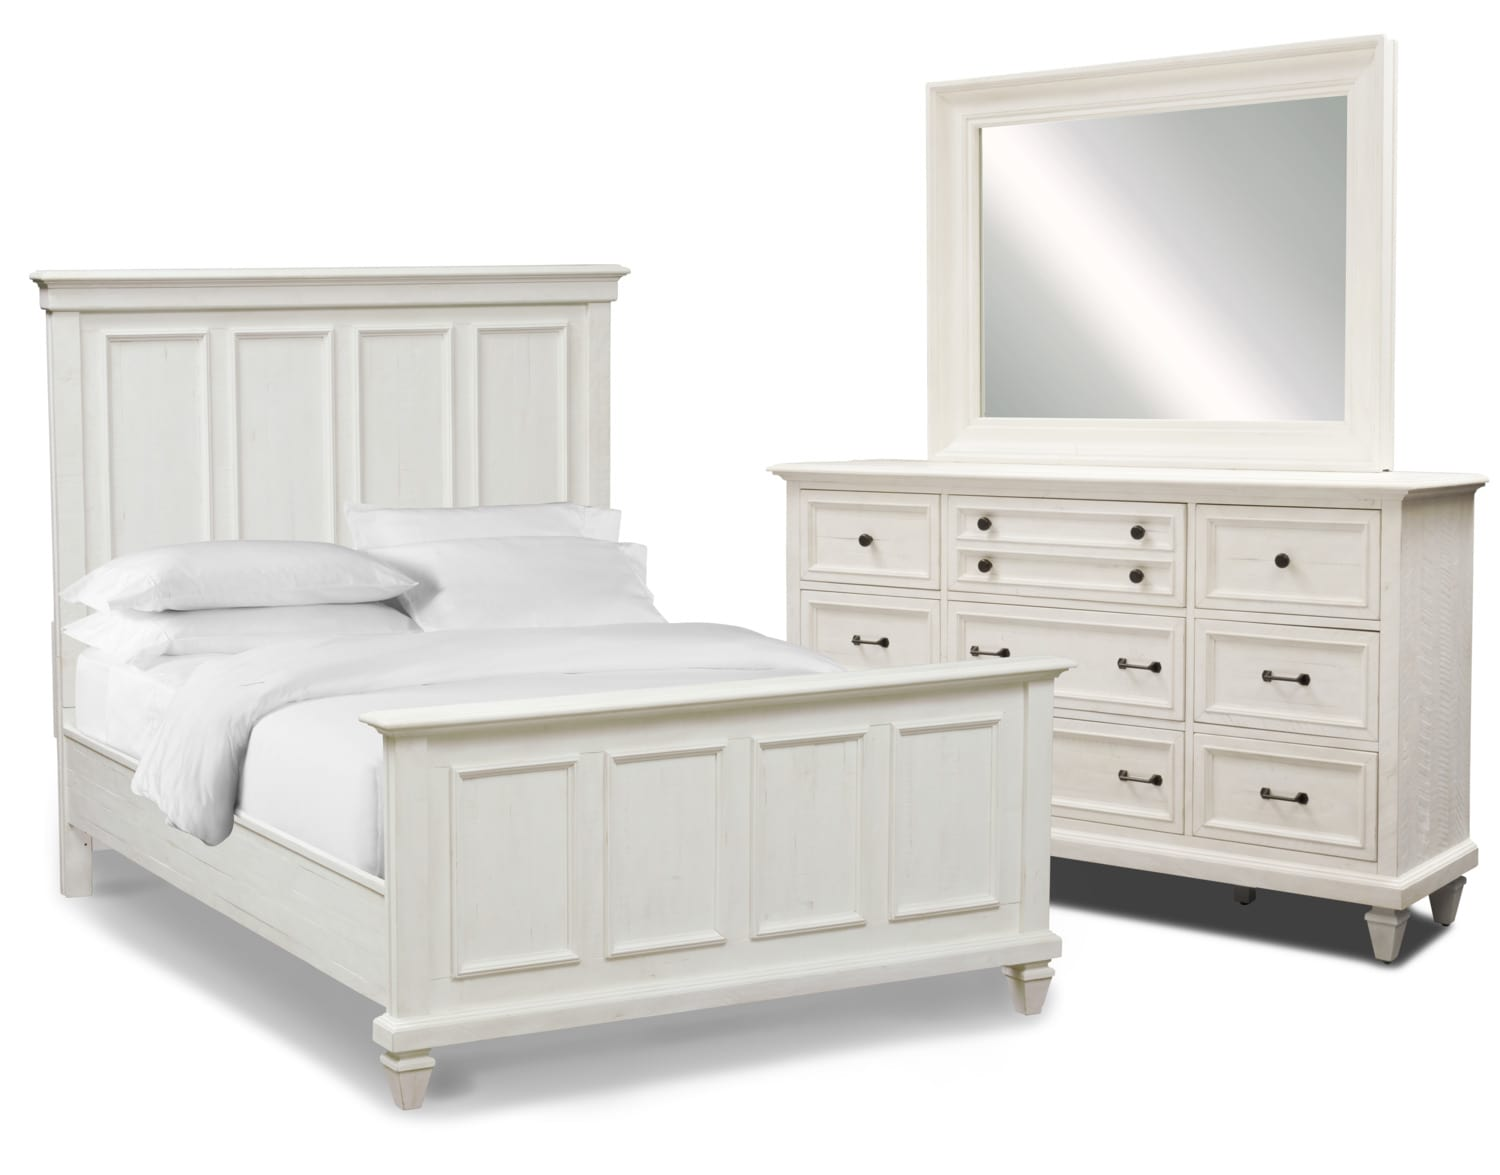 Bedroom Furniture - Harrison 5-Piece Bedroom Set with Dresser and Mirror